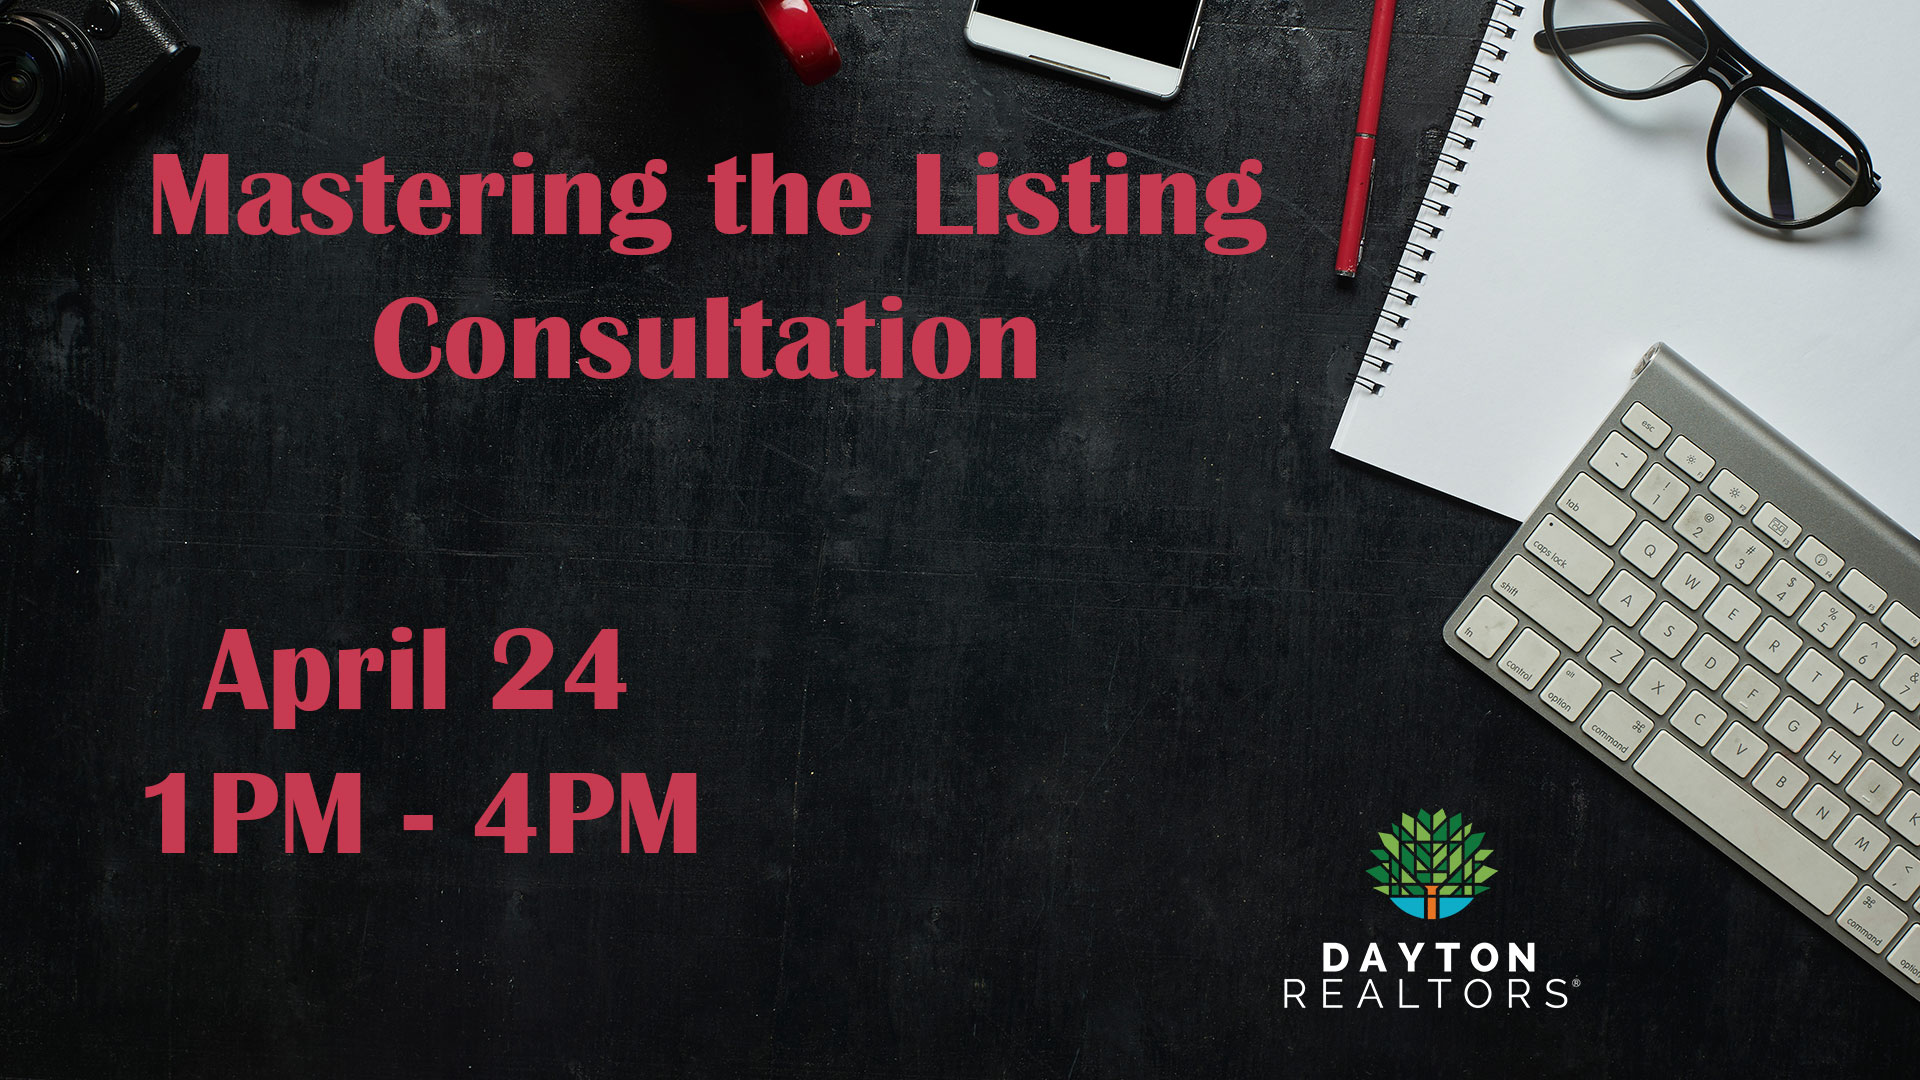 Mastering the Listing Consultation, April 24